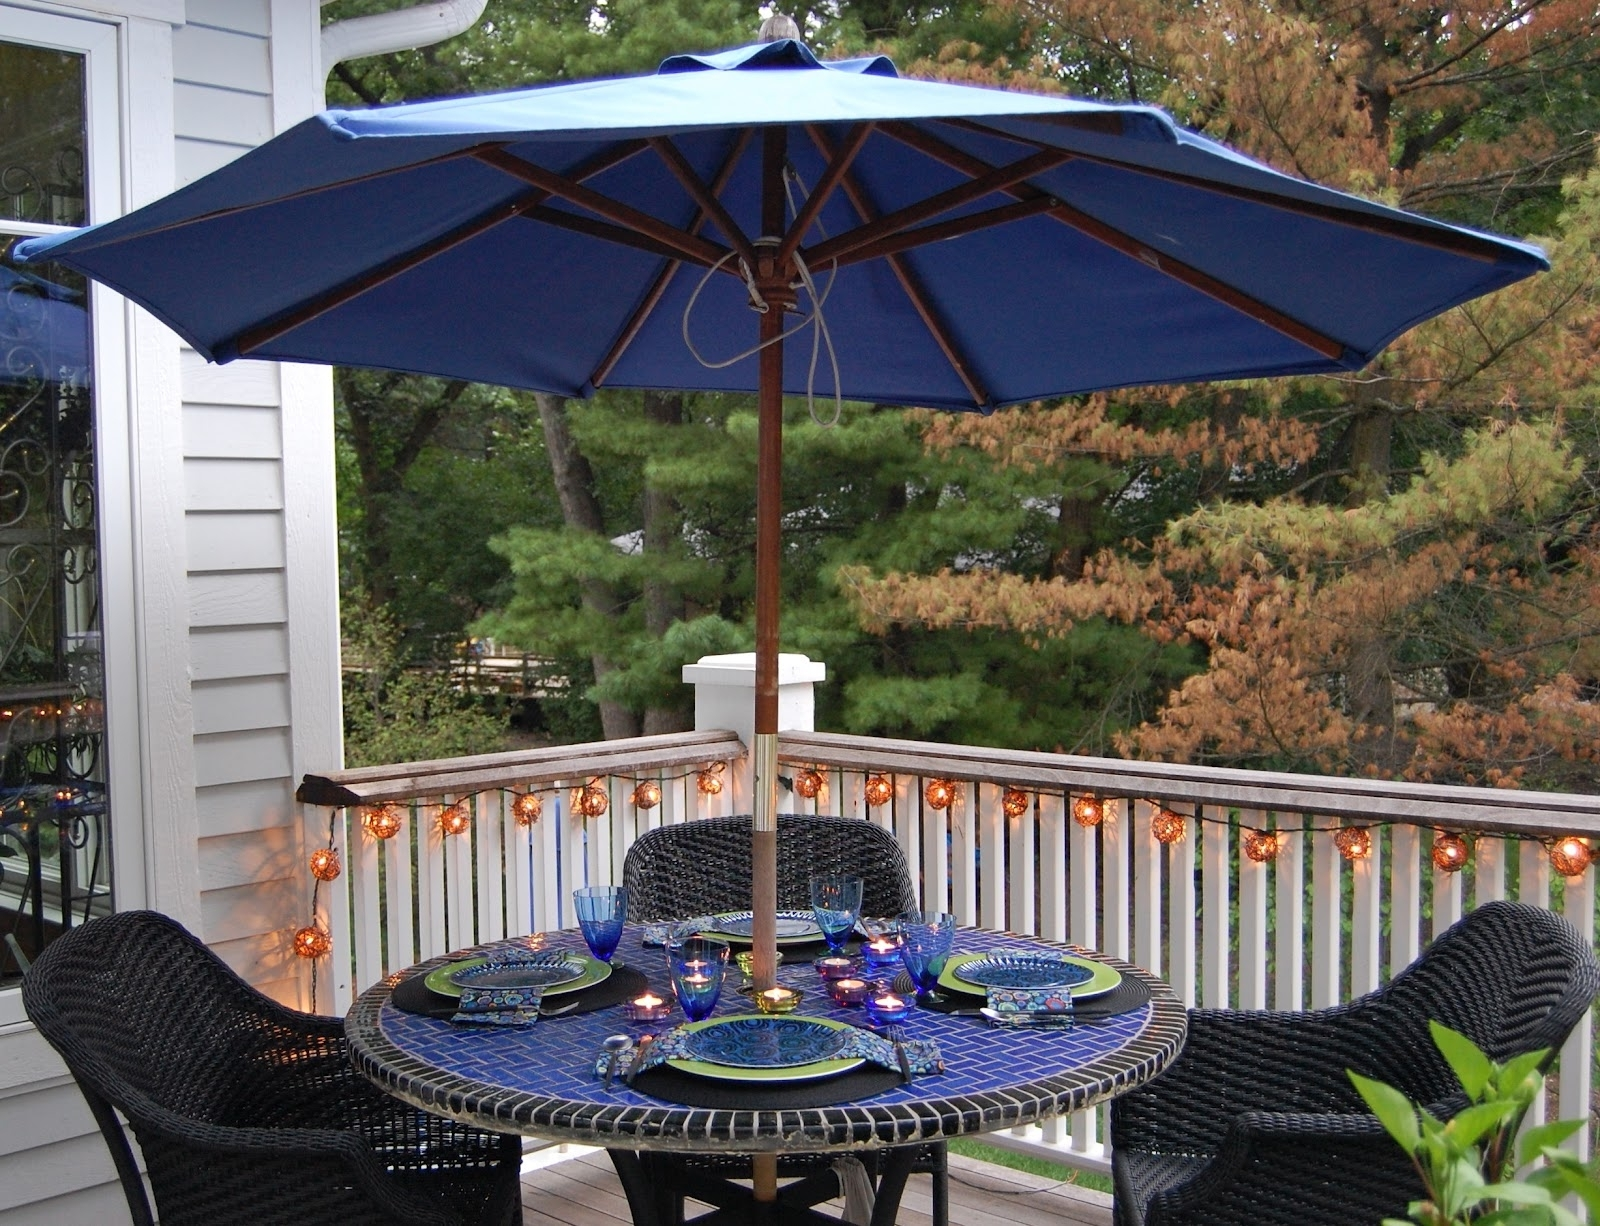 Fashionable Patio Furniture Sets With Umbrellas Regarding Lovable Patio Furniture Sets With Umbrella Patio Set With Umbrella (View 9 of 20)